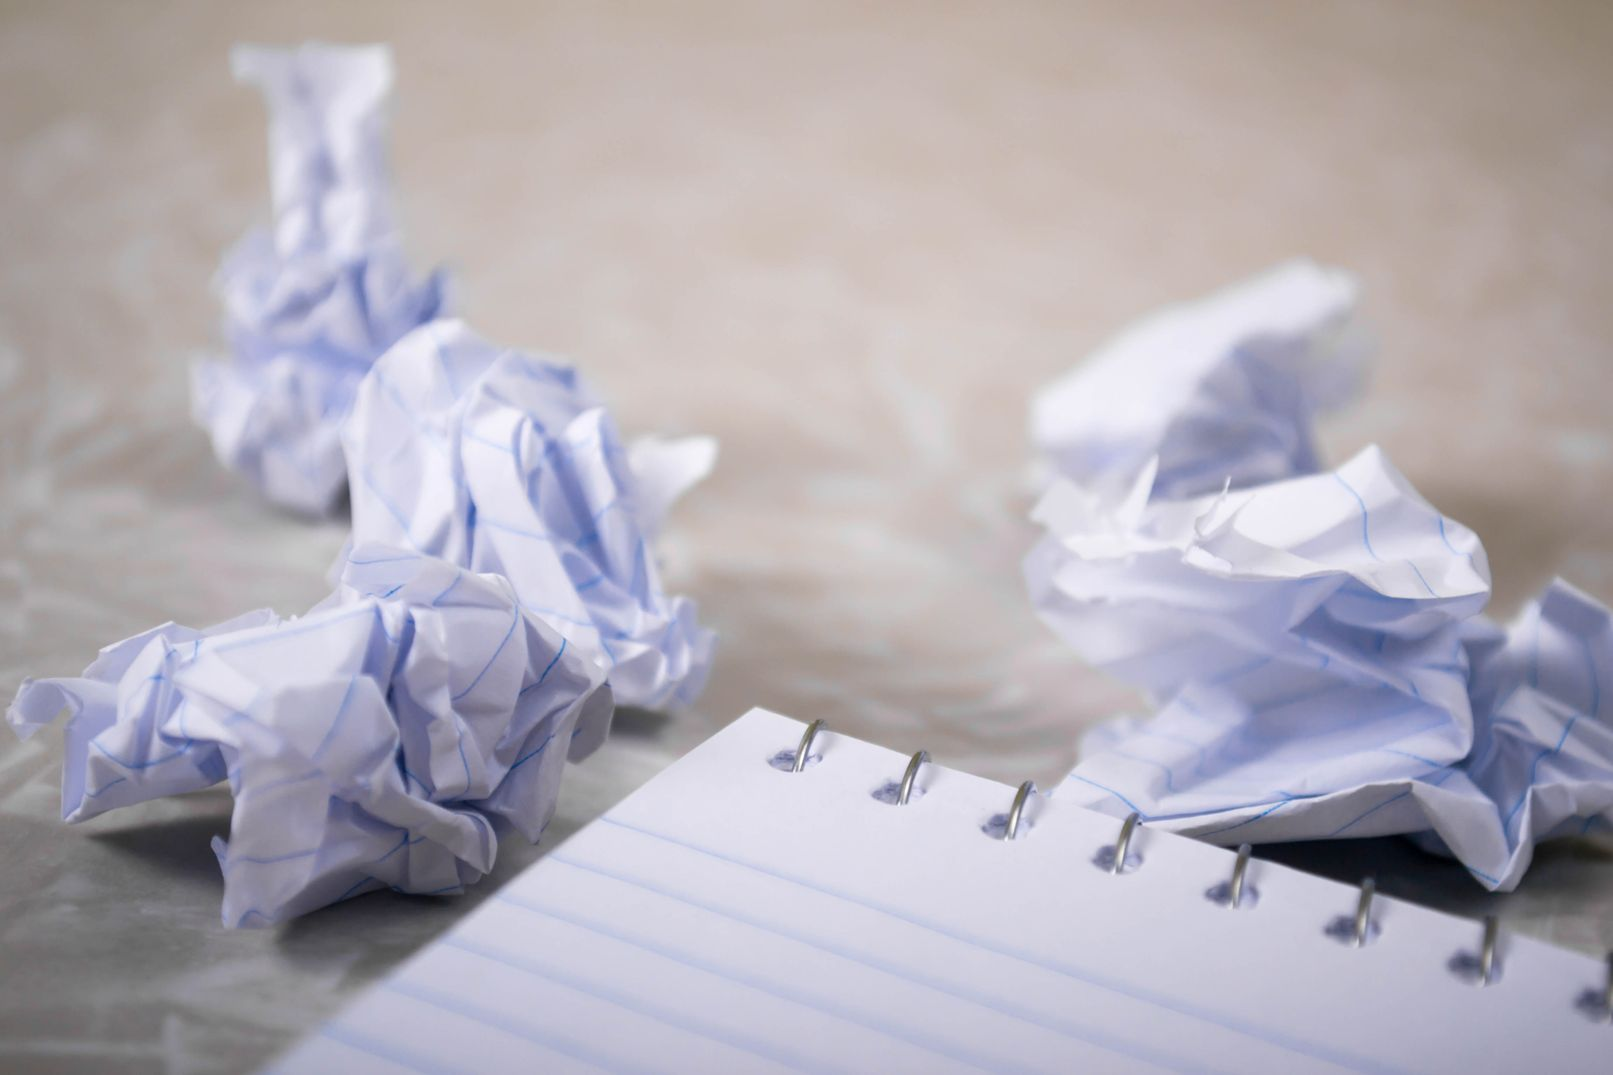 Crumpled pieces of paper next to a notebook